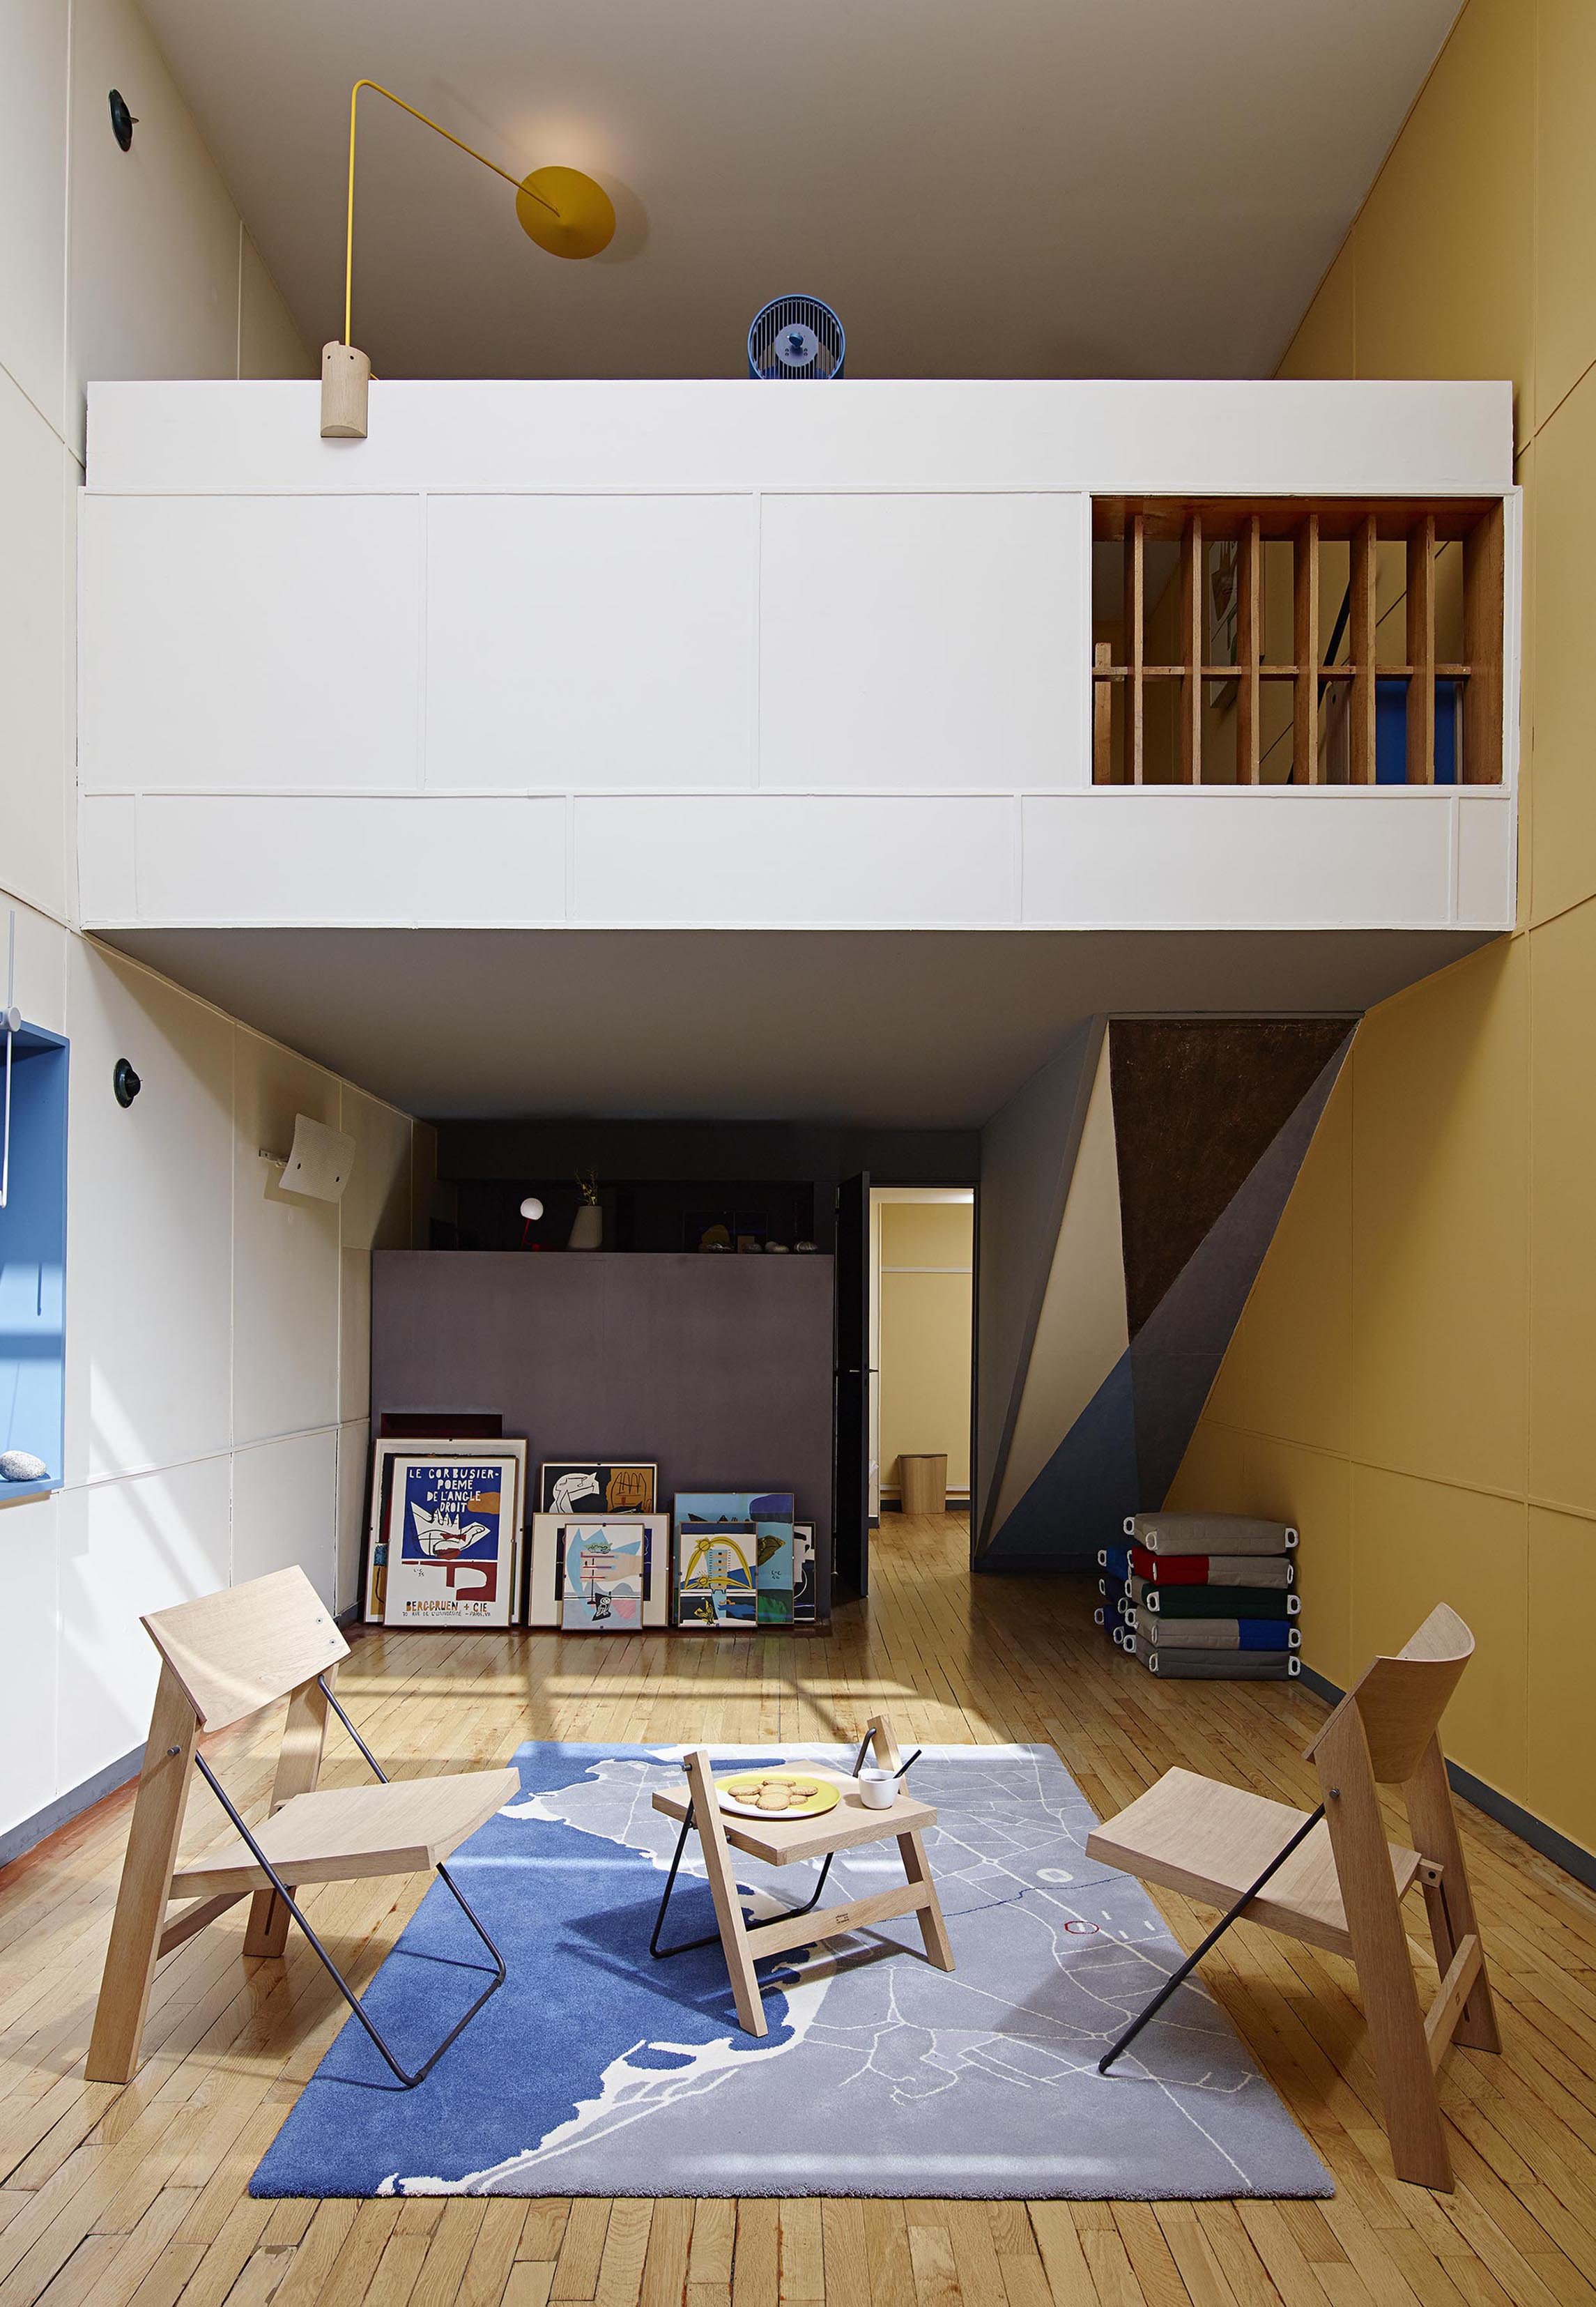 ECAL, Appartement 50 in Cite Radieuse